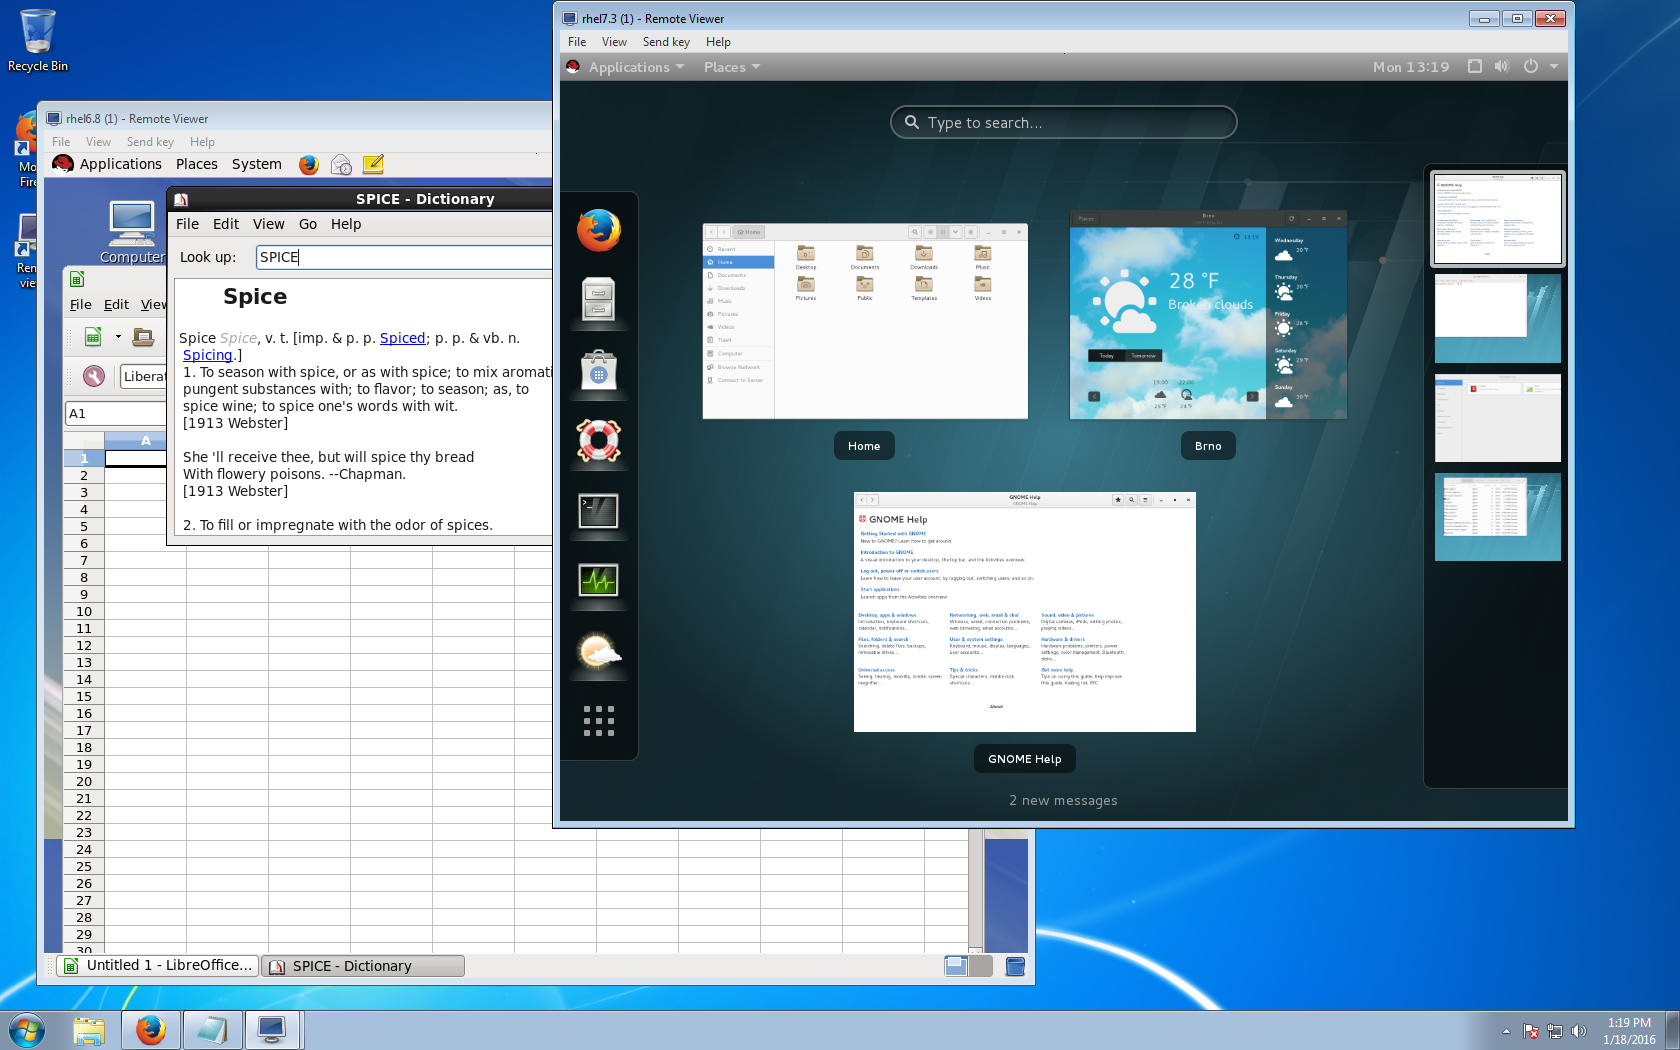 Windows7 client connected to RHEL6 and RHEL7 guests